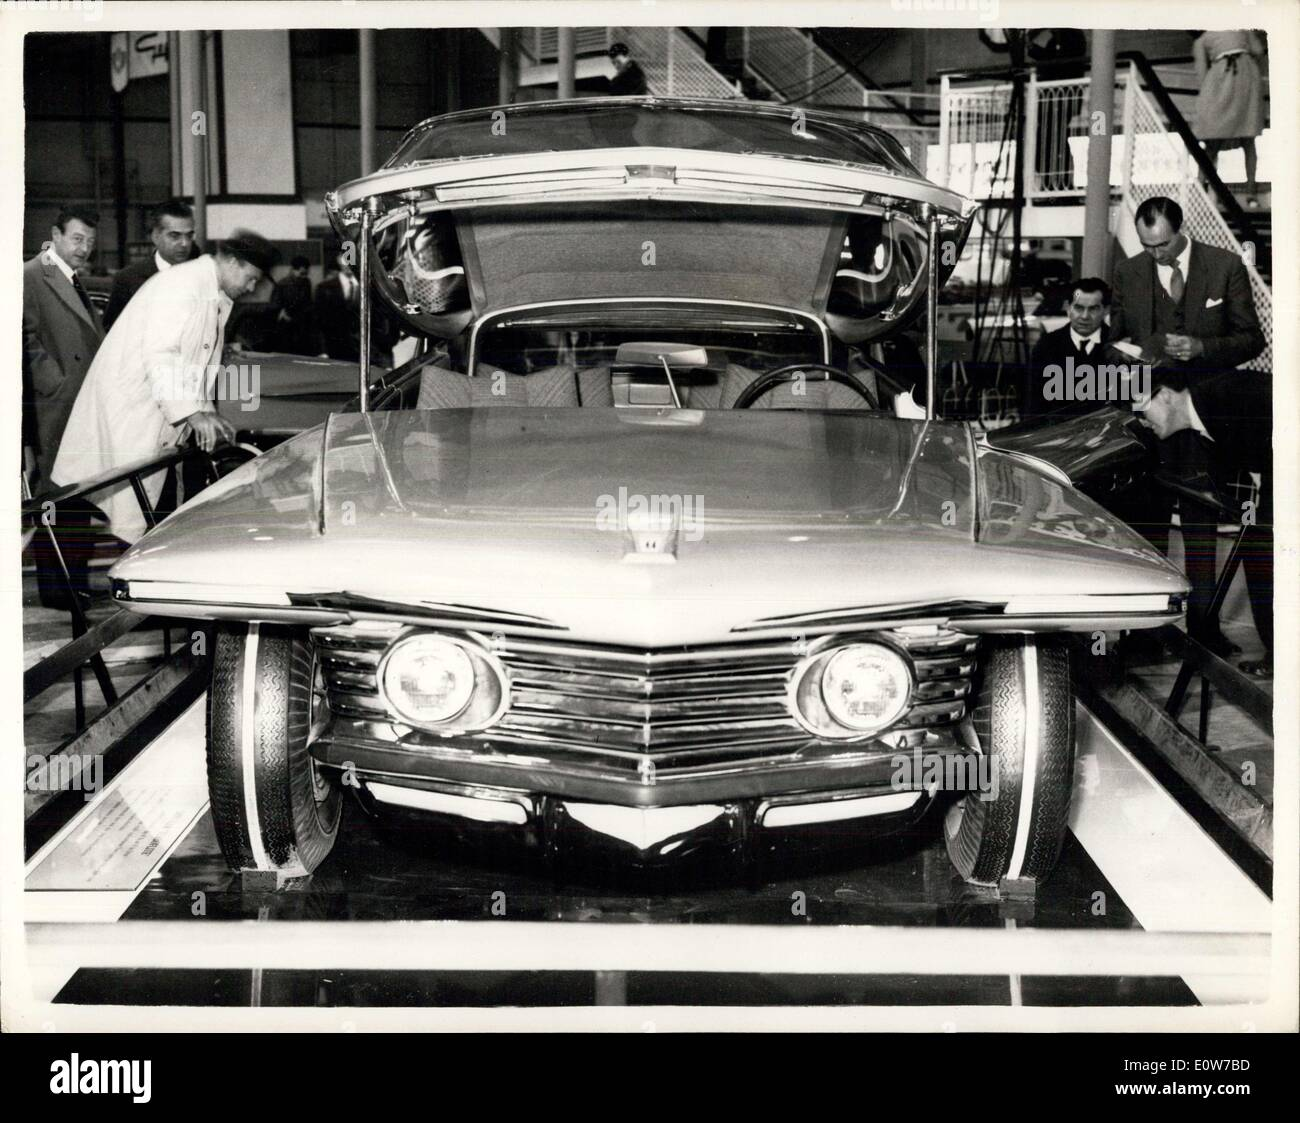 Oct. 17, 1961 - Motor Show Opens at Earl's Court - The Motor Show Opened This Morning at Earl's Court, London - Stock Photo